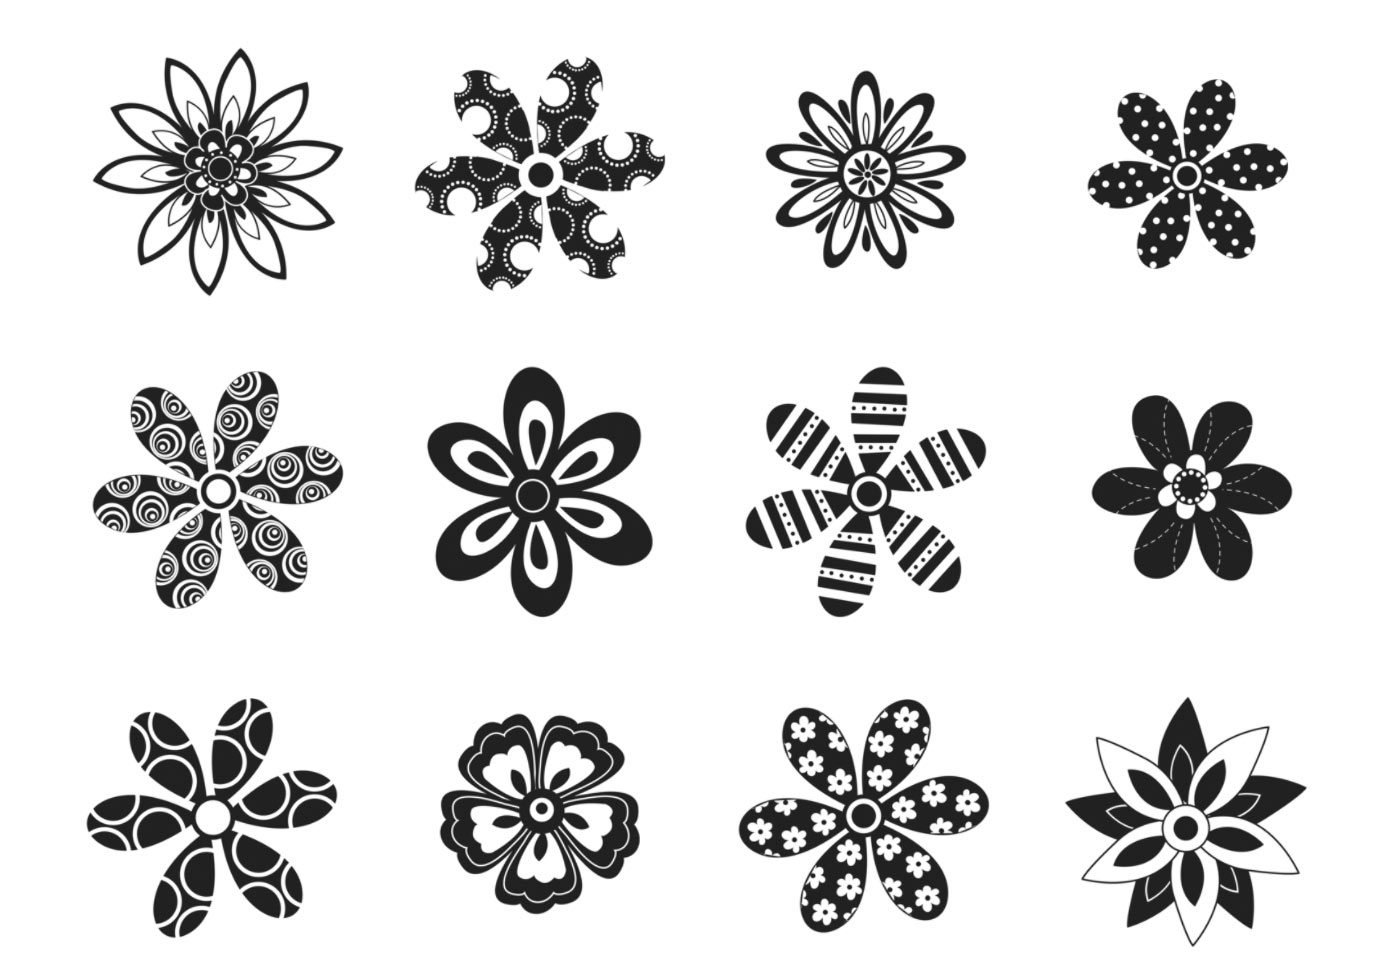 Decorative Black and White Flower Vector Pack - Download ...